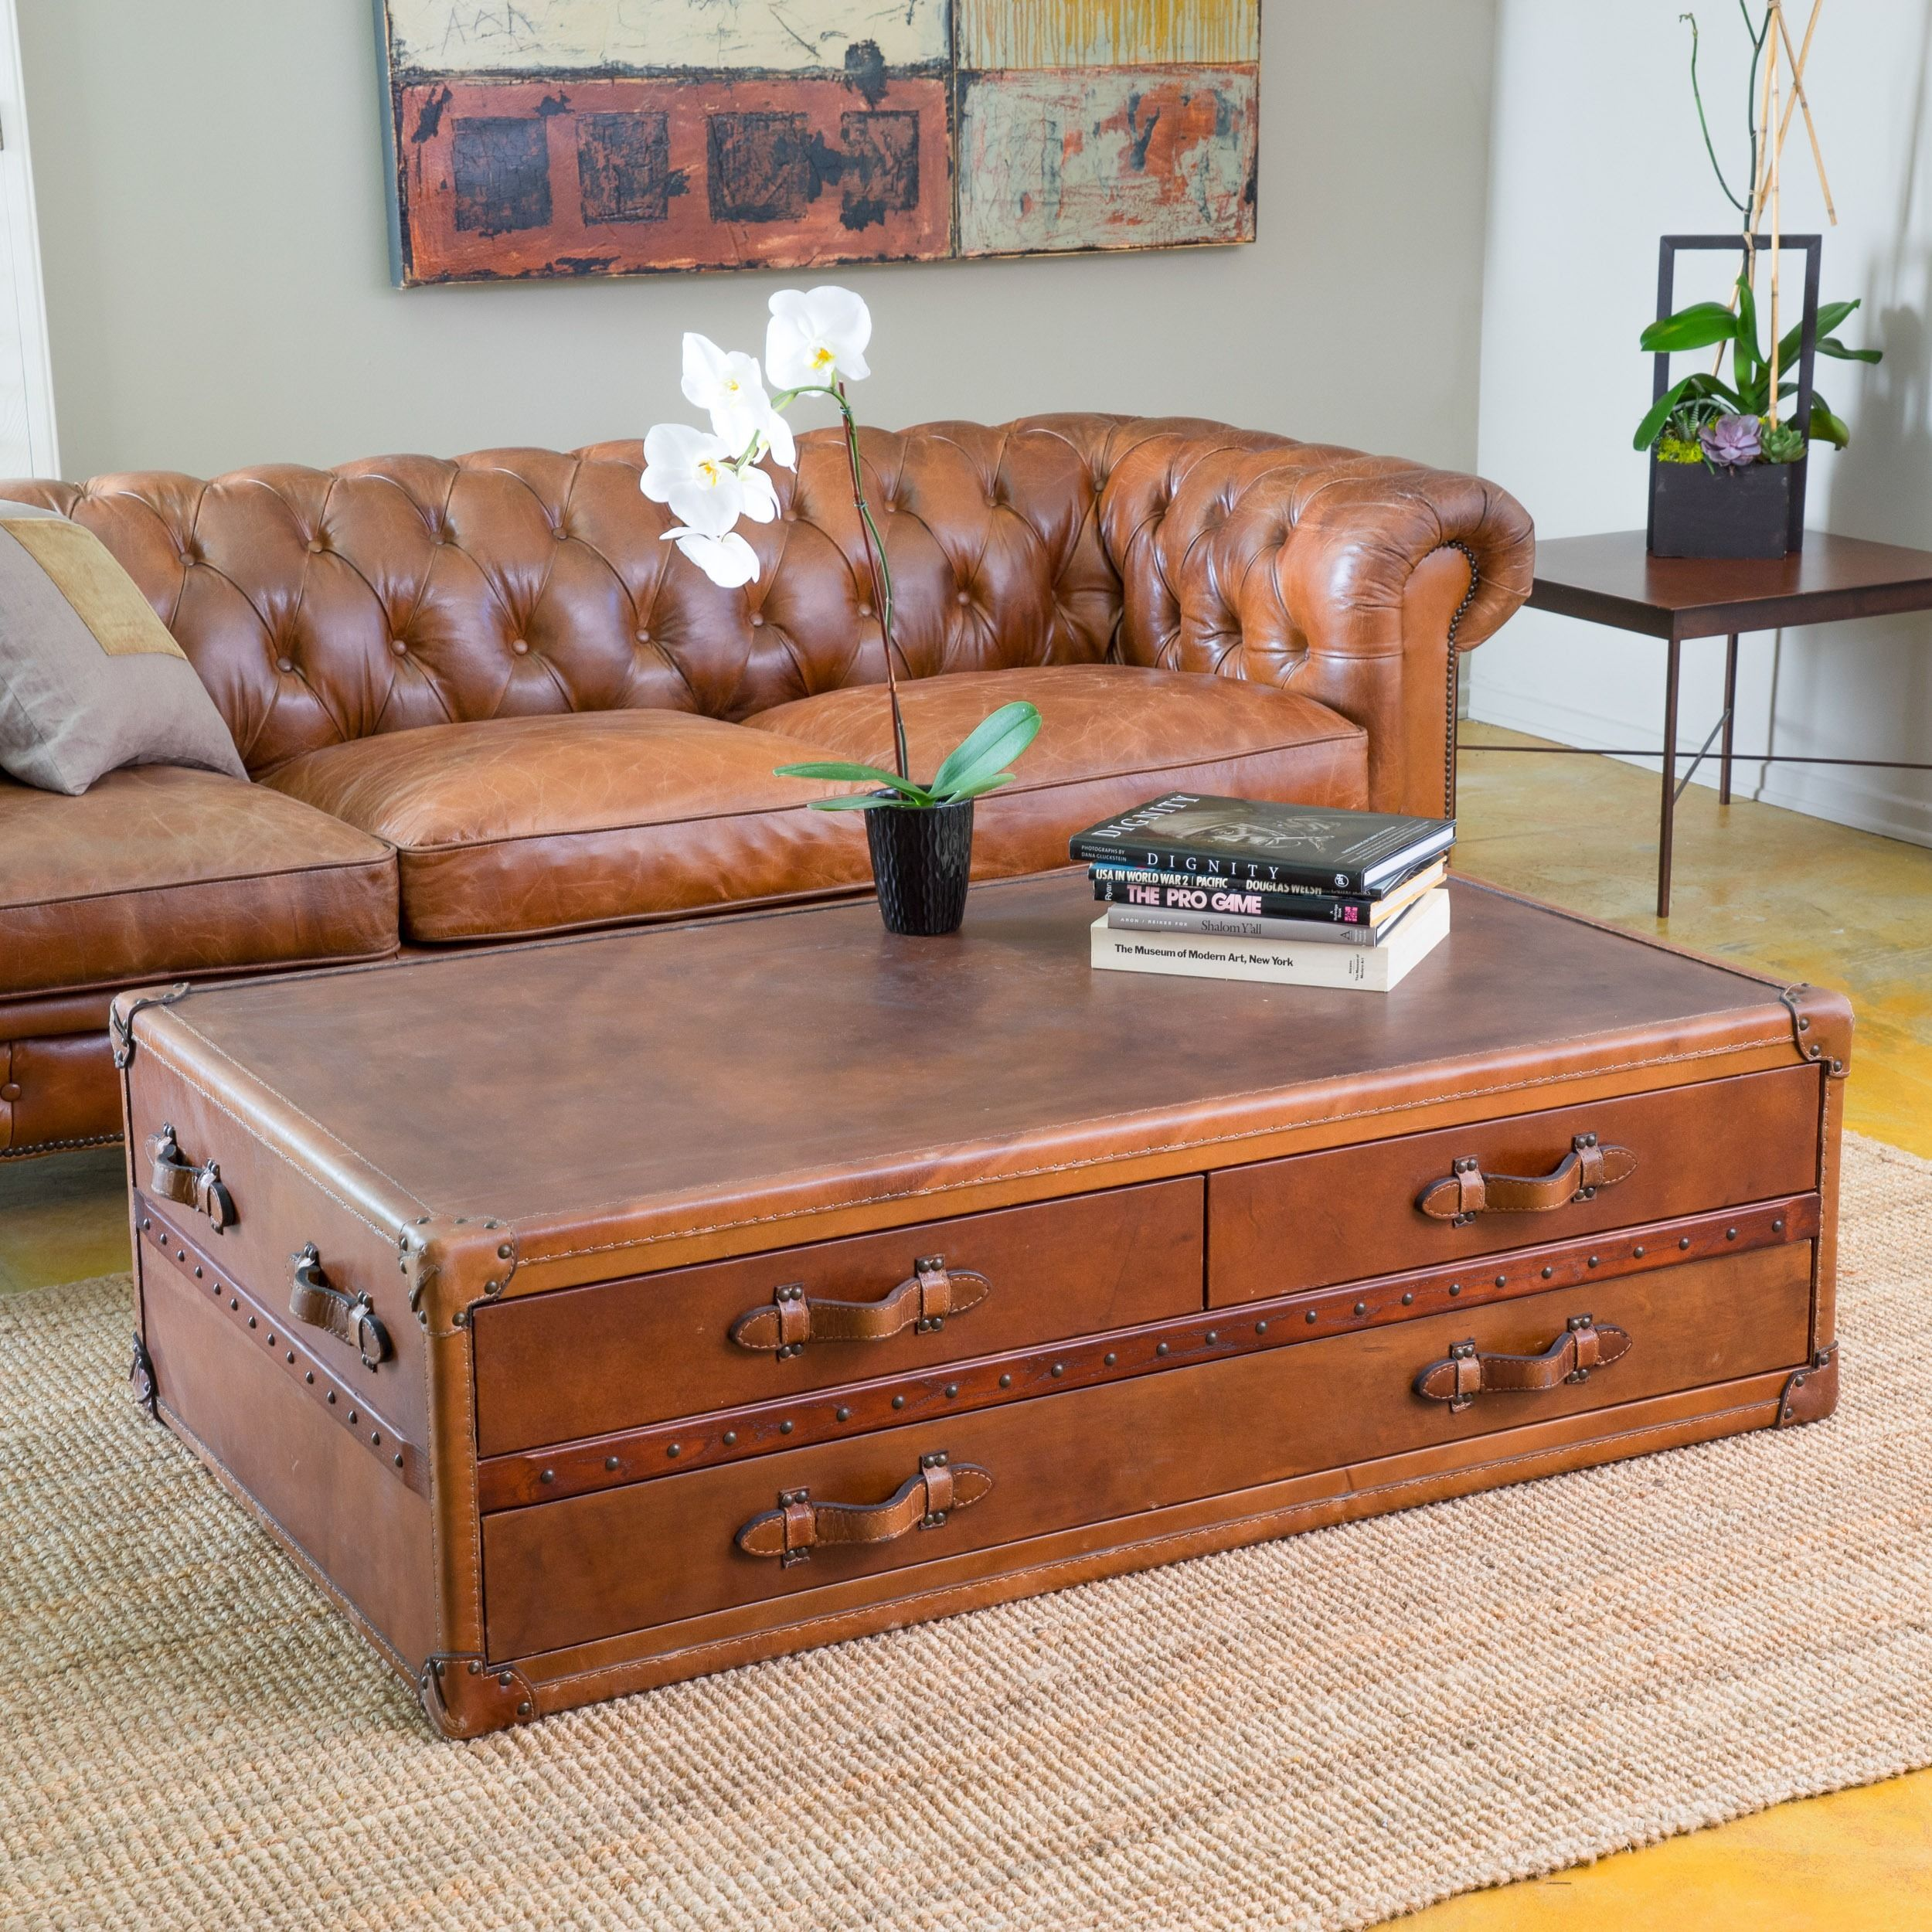 pacific living room coffee table trunk chest elegant set upholstered in top grain leather with antique stud detailing the quality of this will make a statement any your home